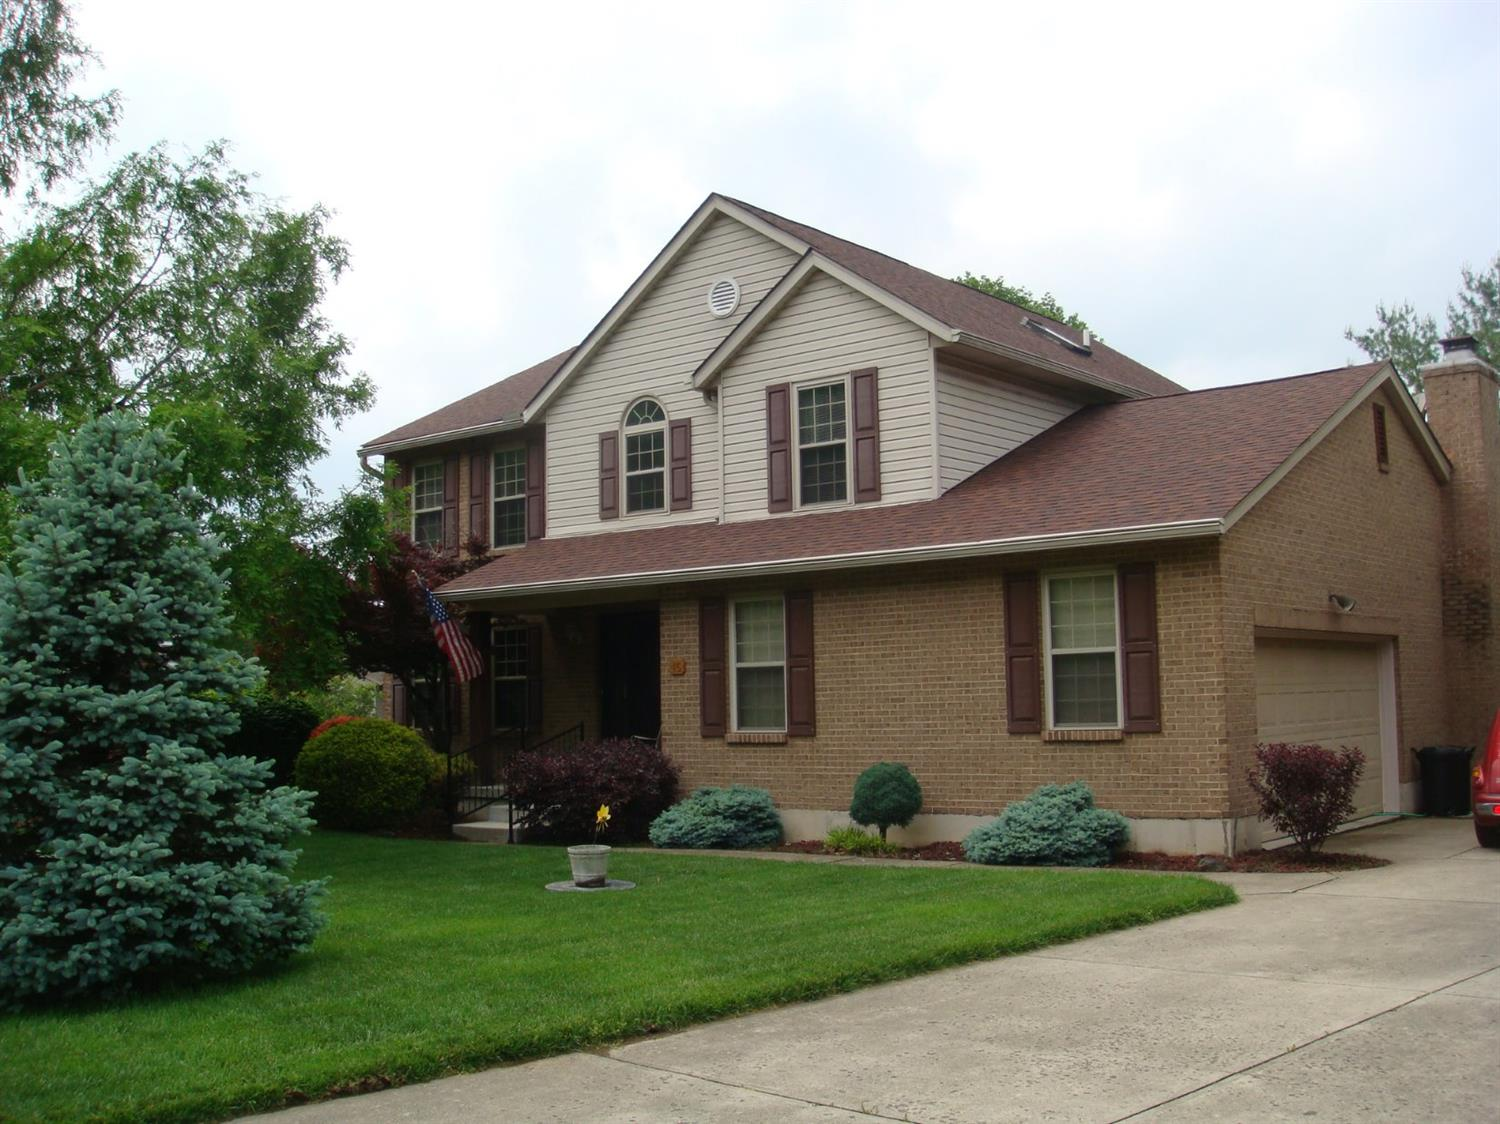 Property for sale at 15 Lake Cumberland Drive, Fairfield,  Ohio 45014